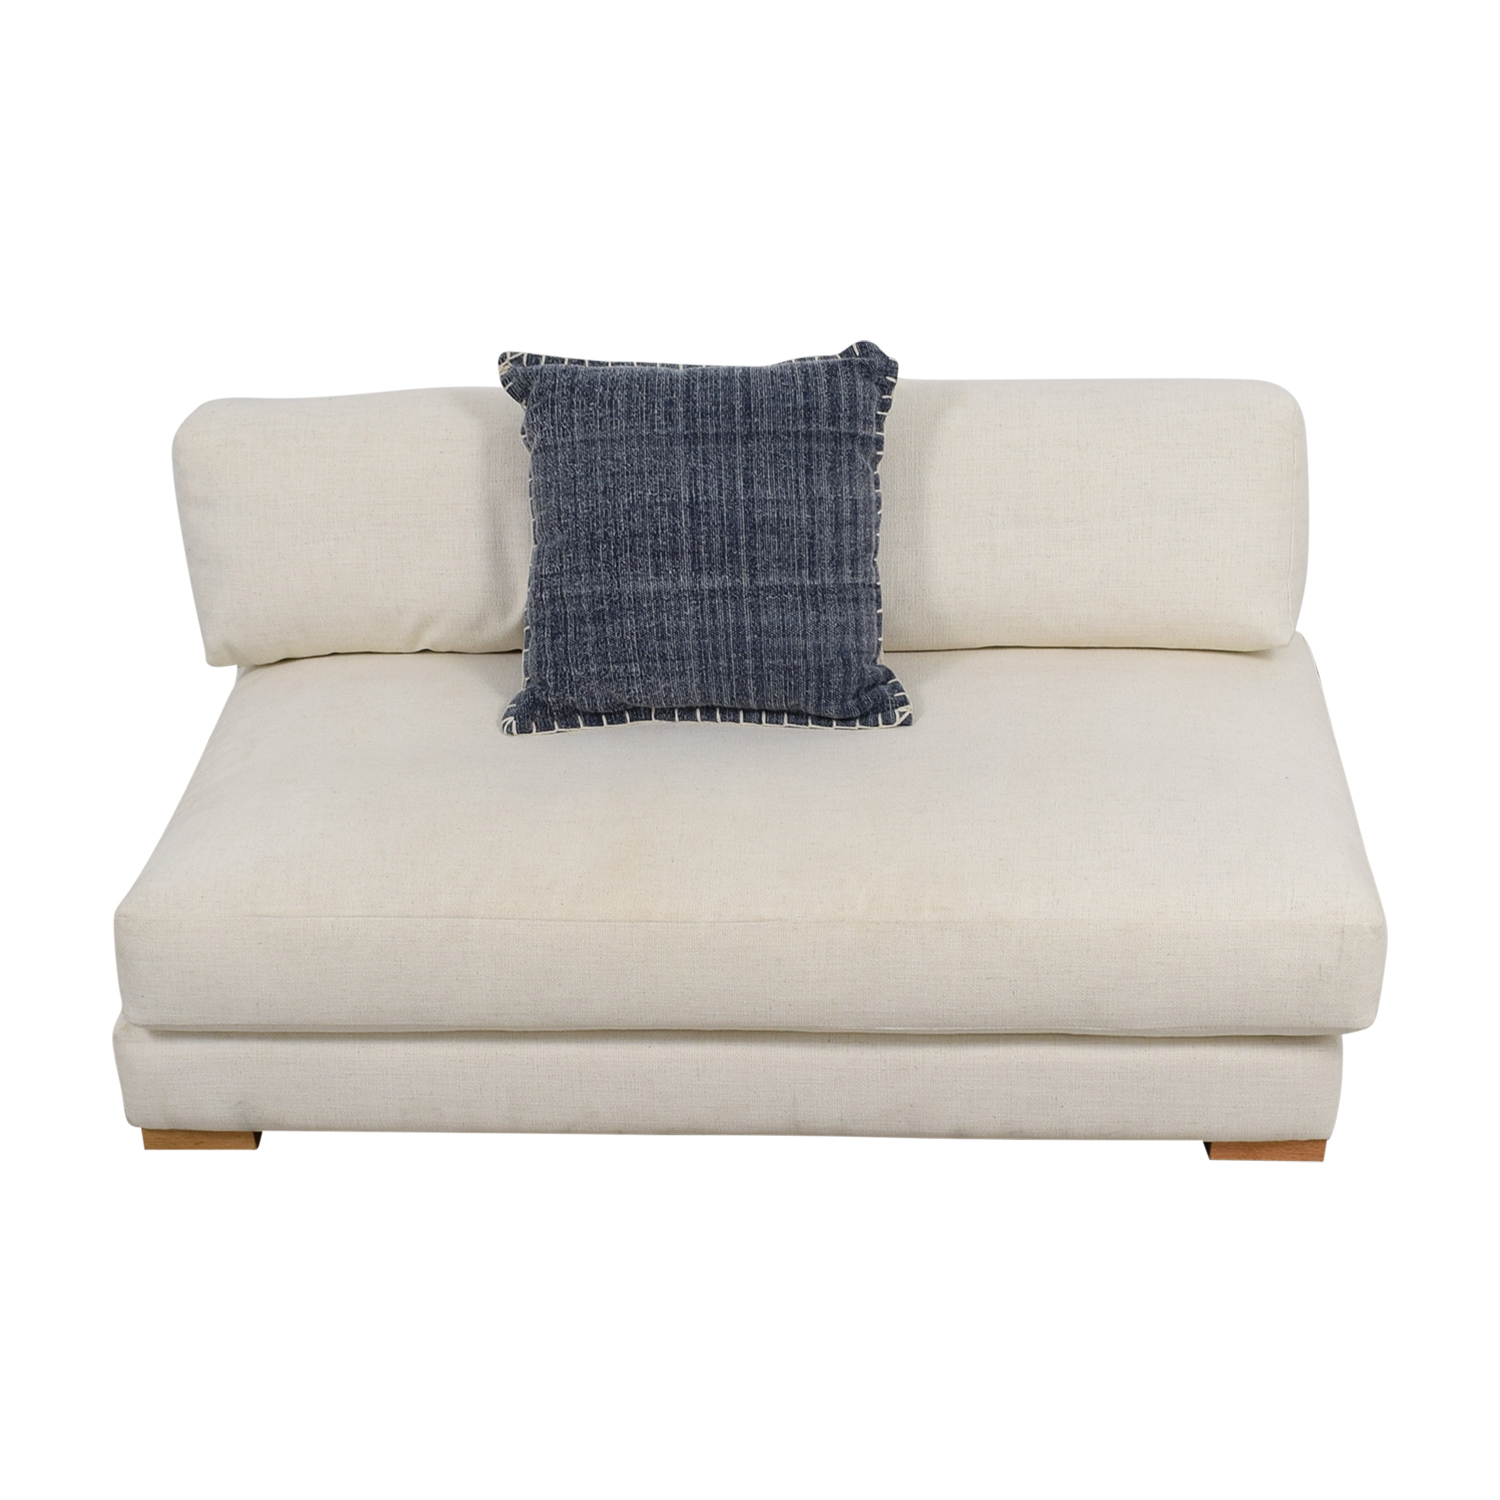 CB2 CB2 Piazza White Single Cushion Sofa for sale